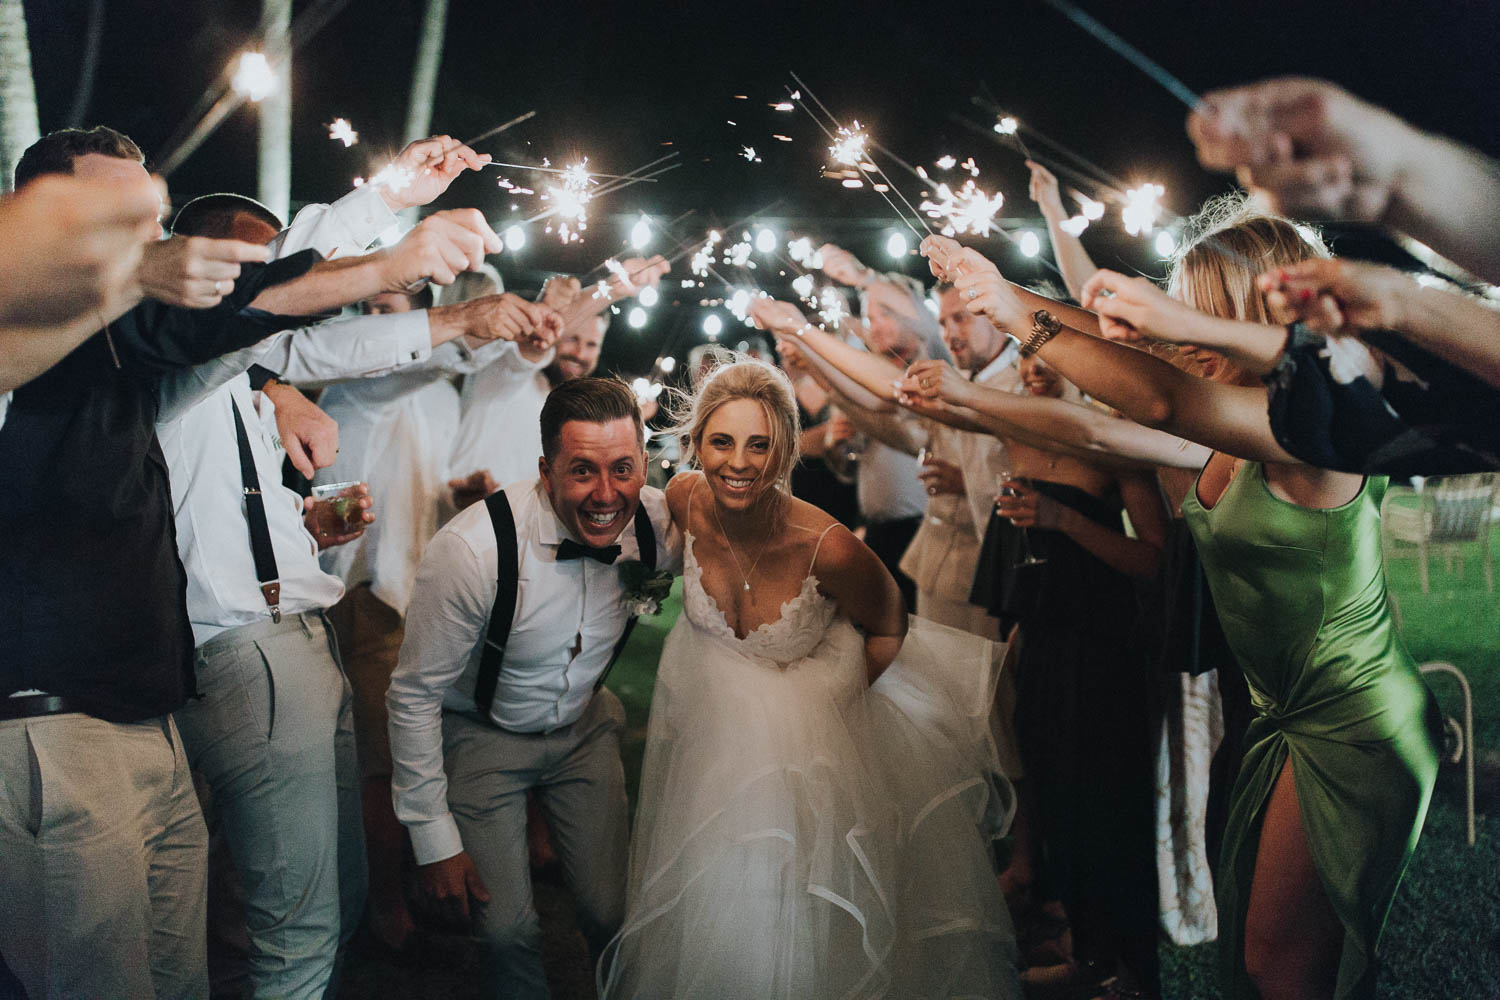 https://www.hamiltonislandweddings.com/wp-content/uploads/2018/11/Bishop-38.jpg